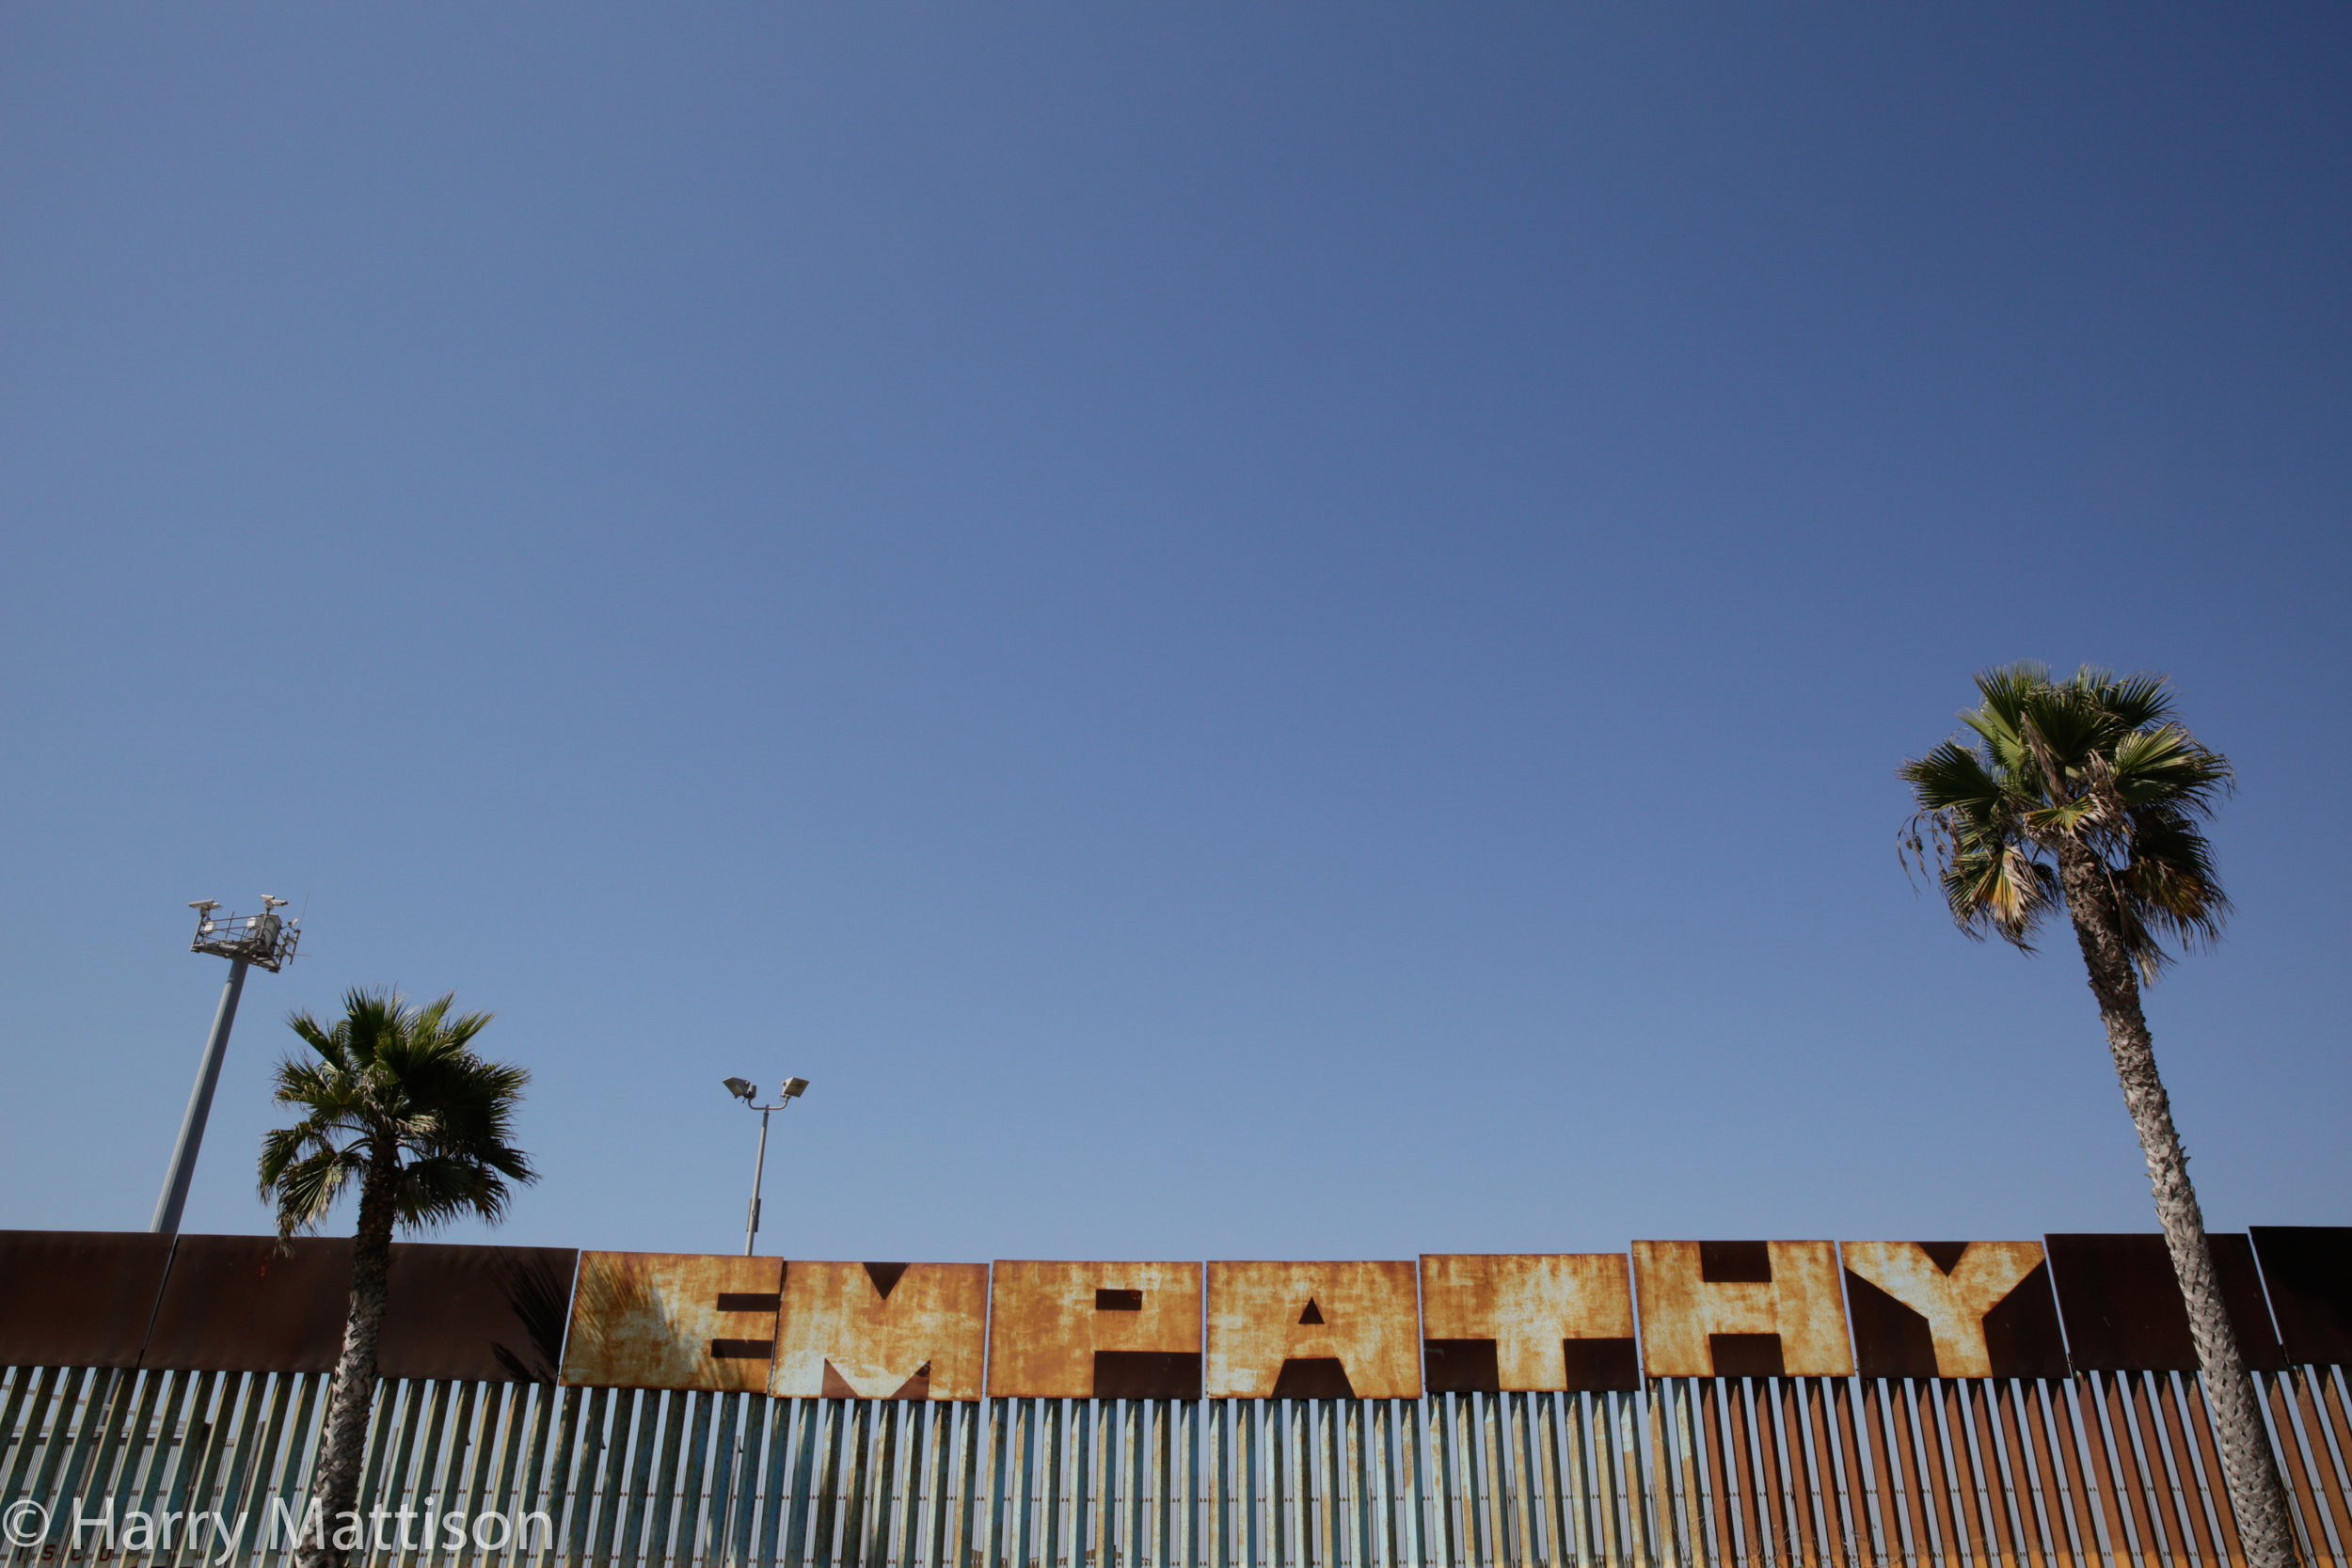 Mexican side of the fence, Tijuana.